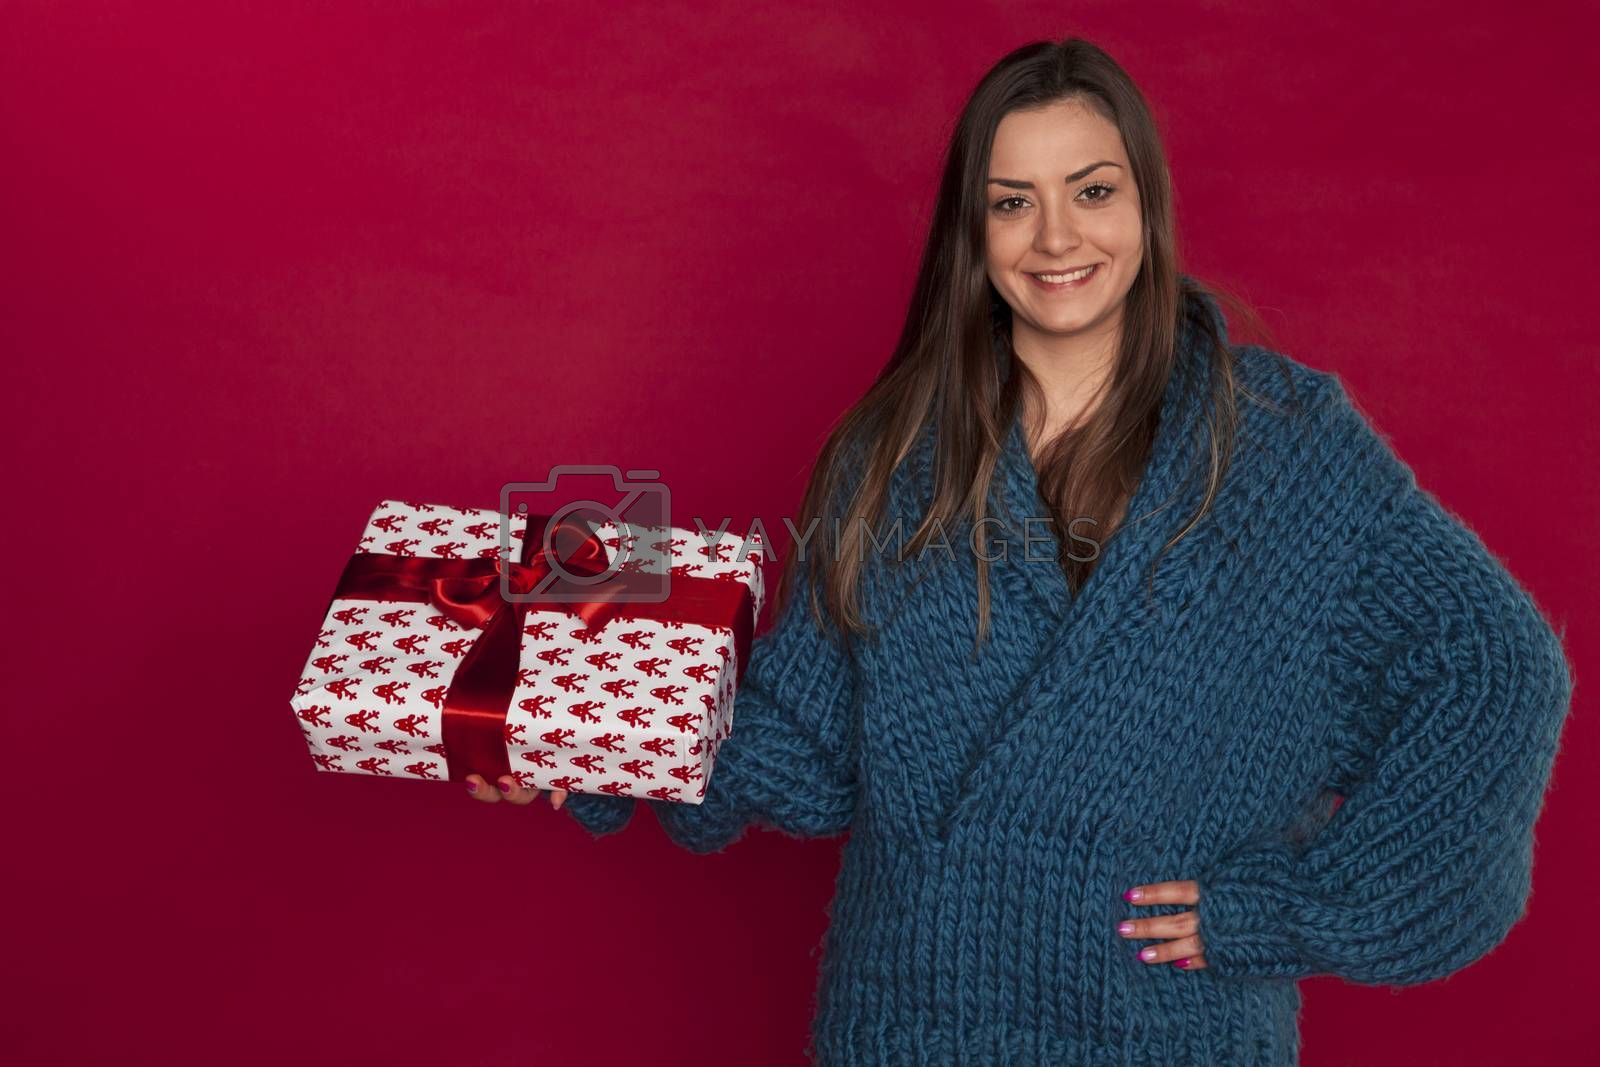 young girl in blue sweater holding a christmas gift